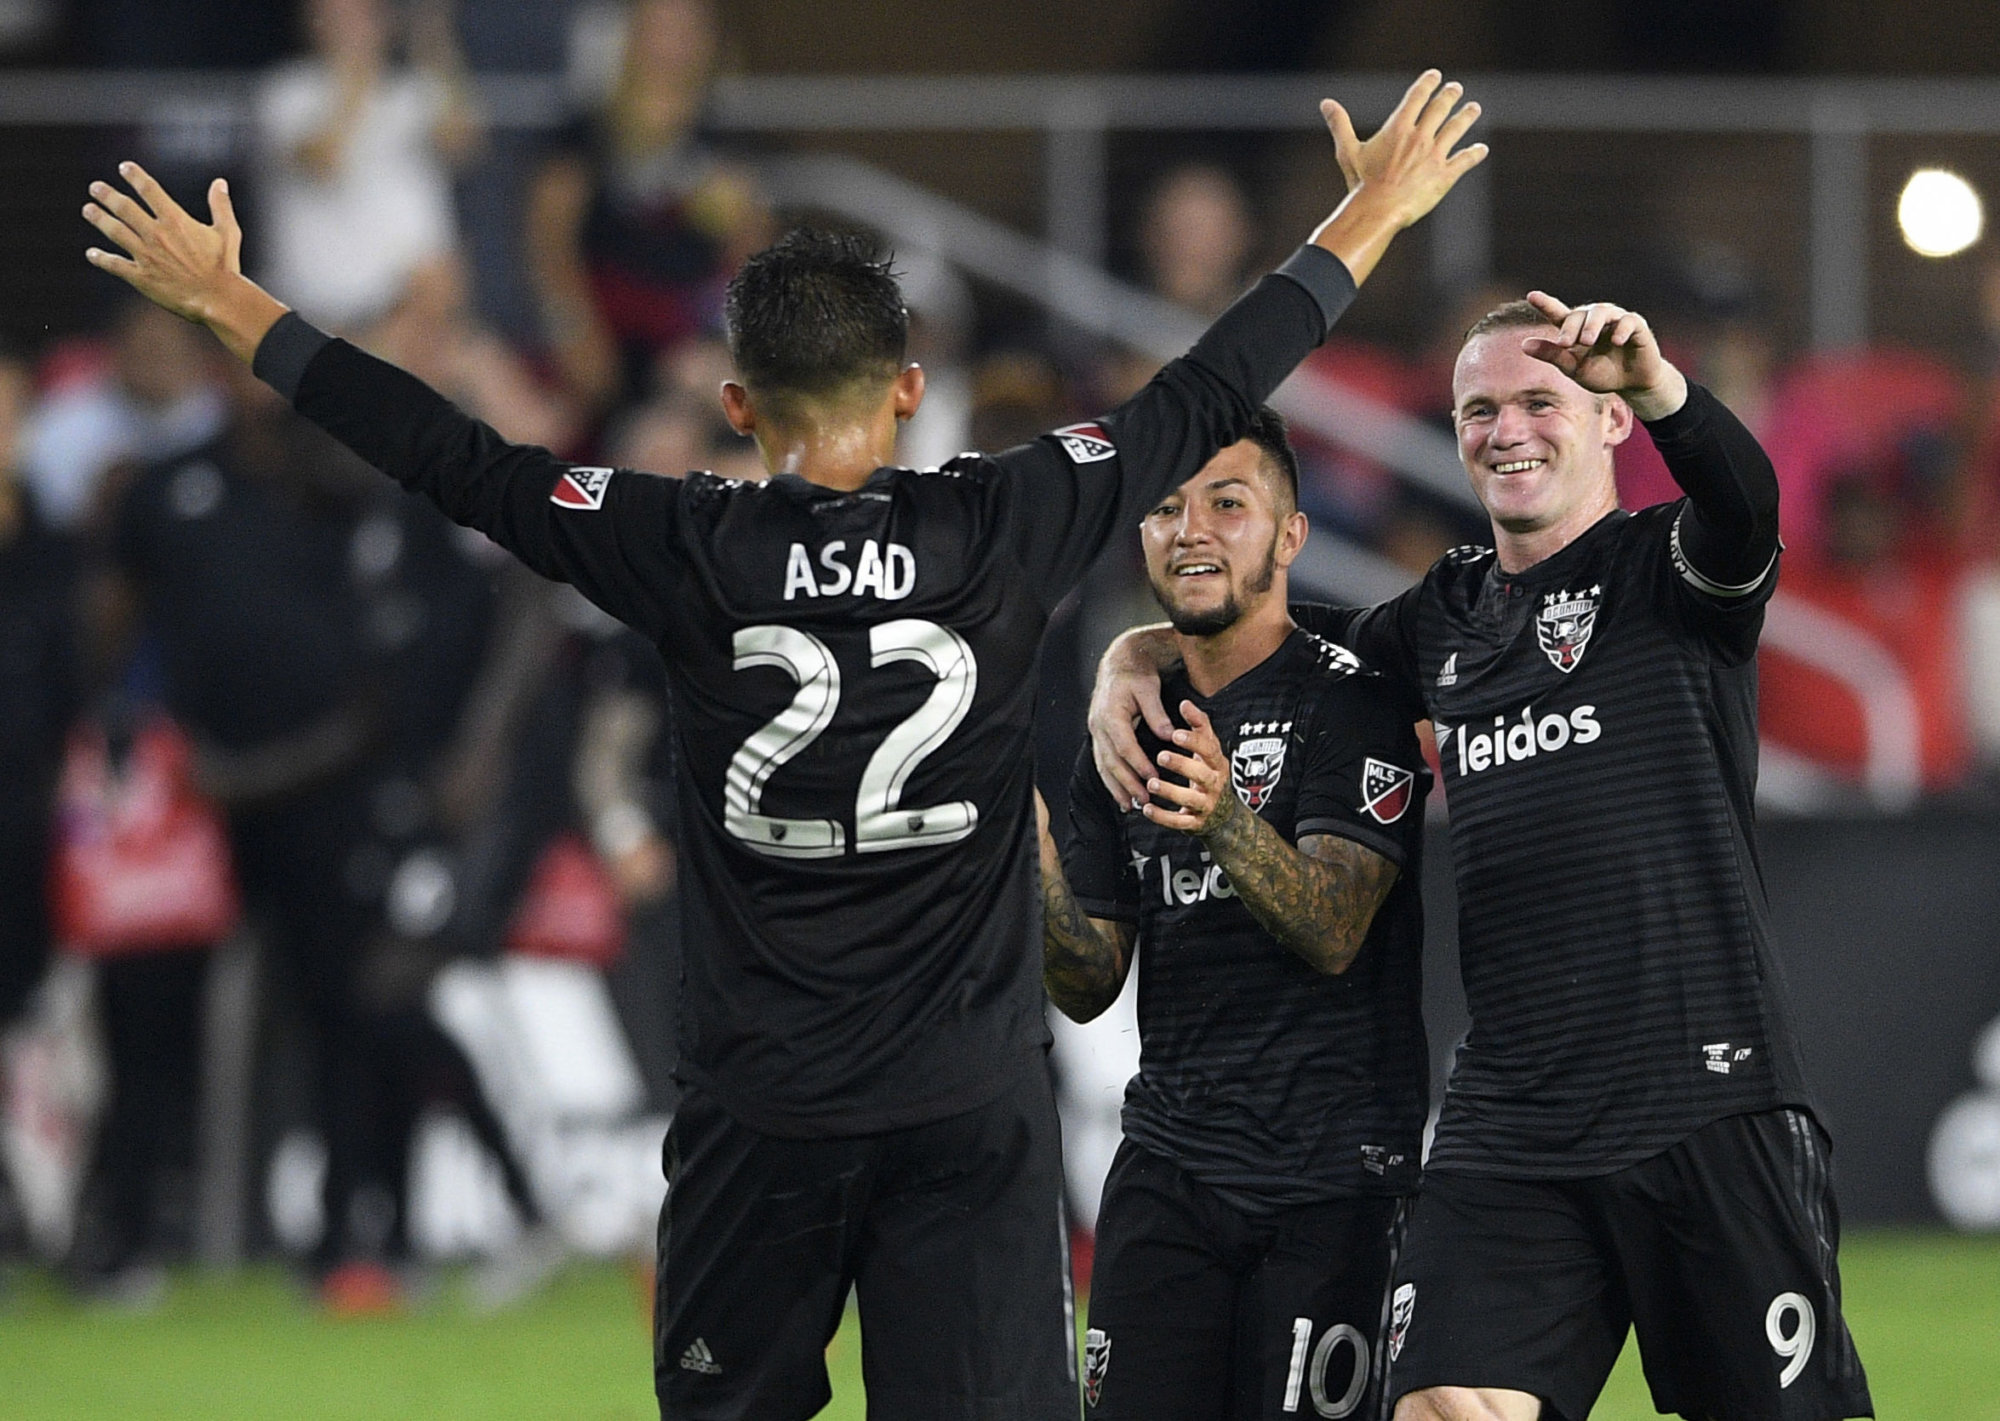 Rooney s 2 goals raise total to 9 as DC United tops Fire 2-1  cb8bf80a9